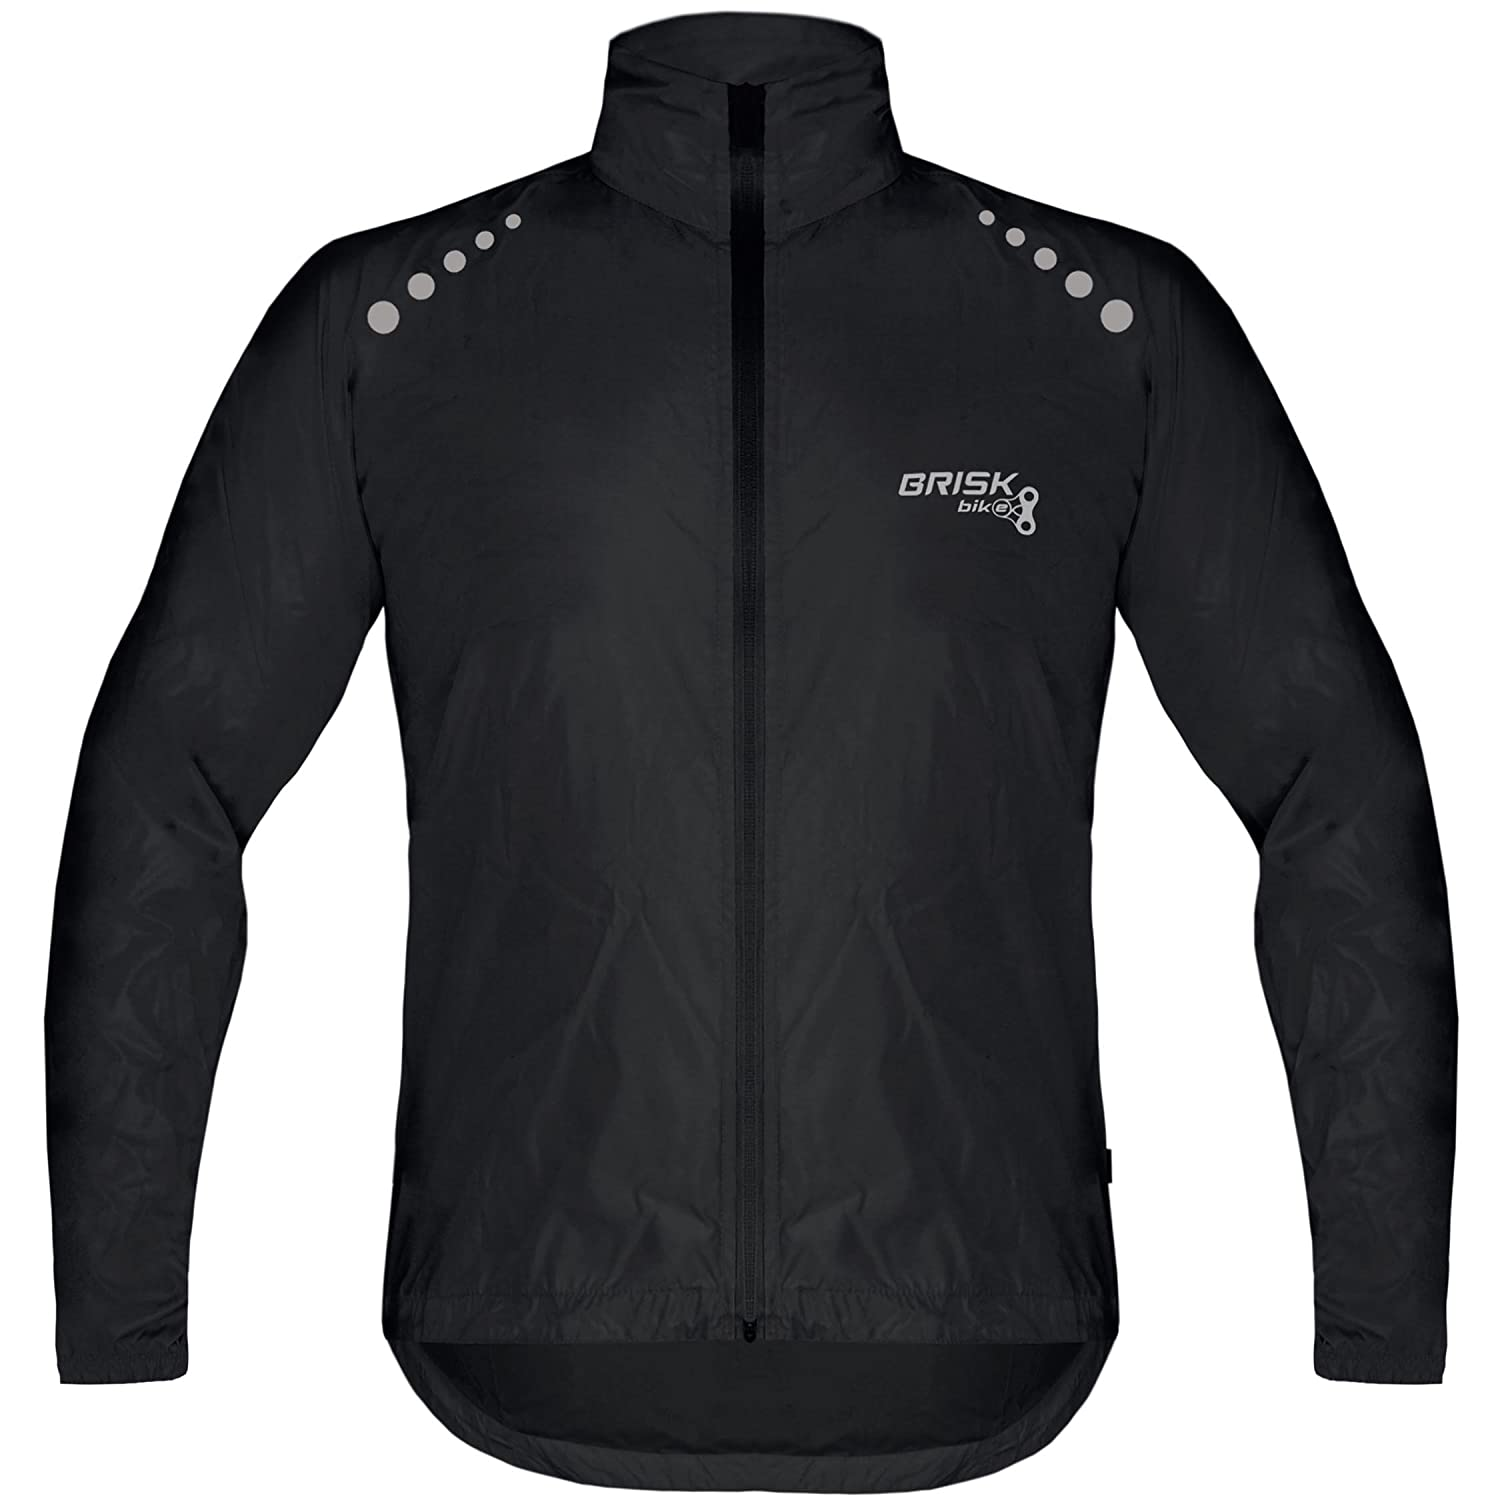 Brisk Bike Ultra-Light Weight Rain Jacket for Cycling: Amazon.es: Deportes y aire libre